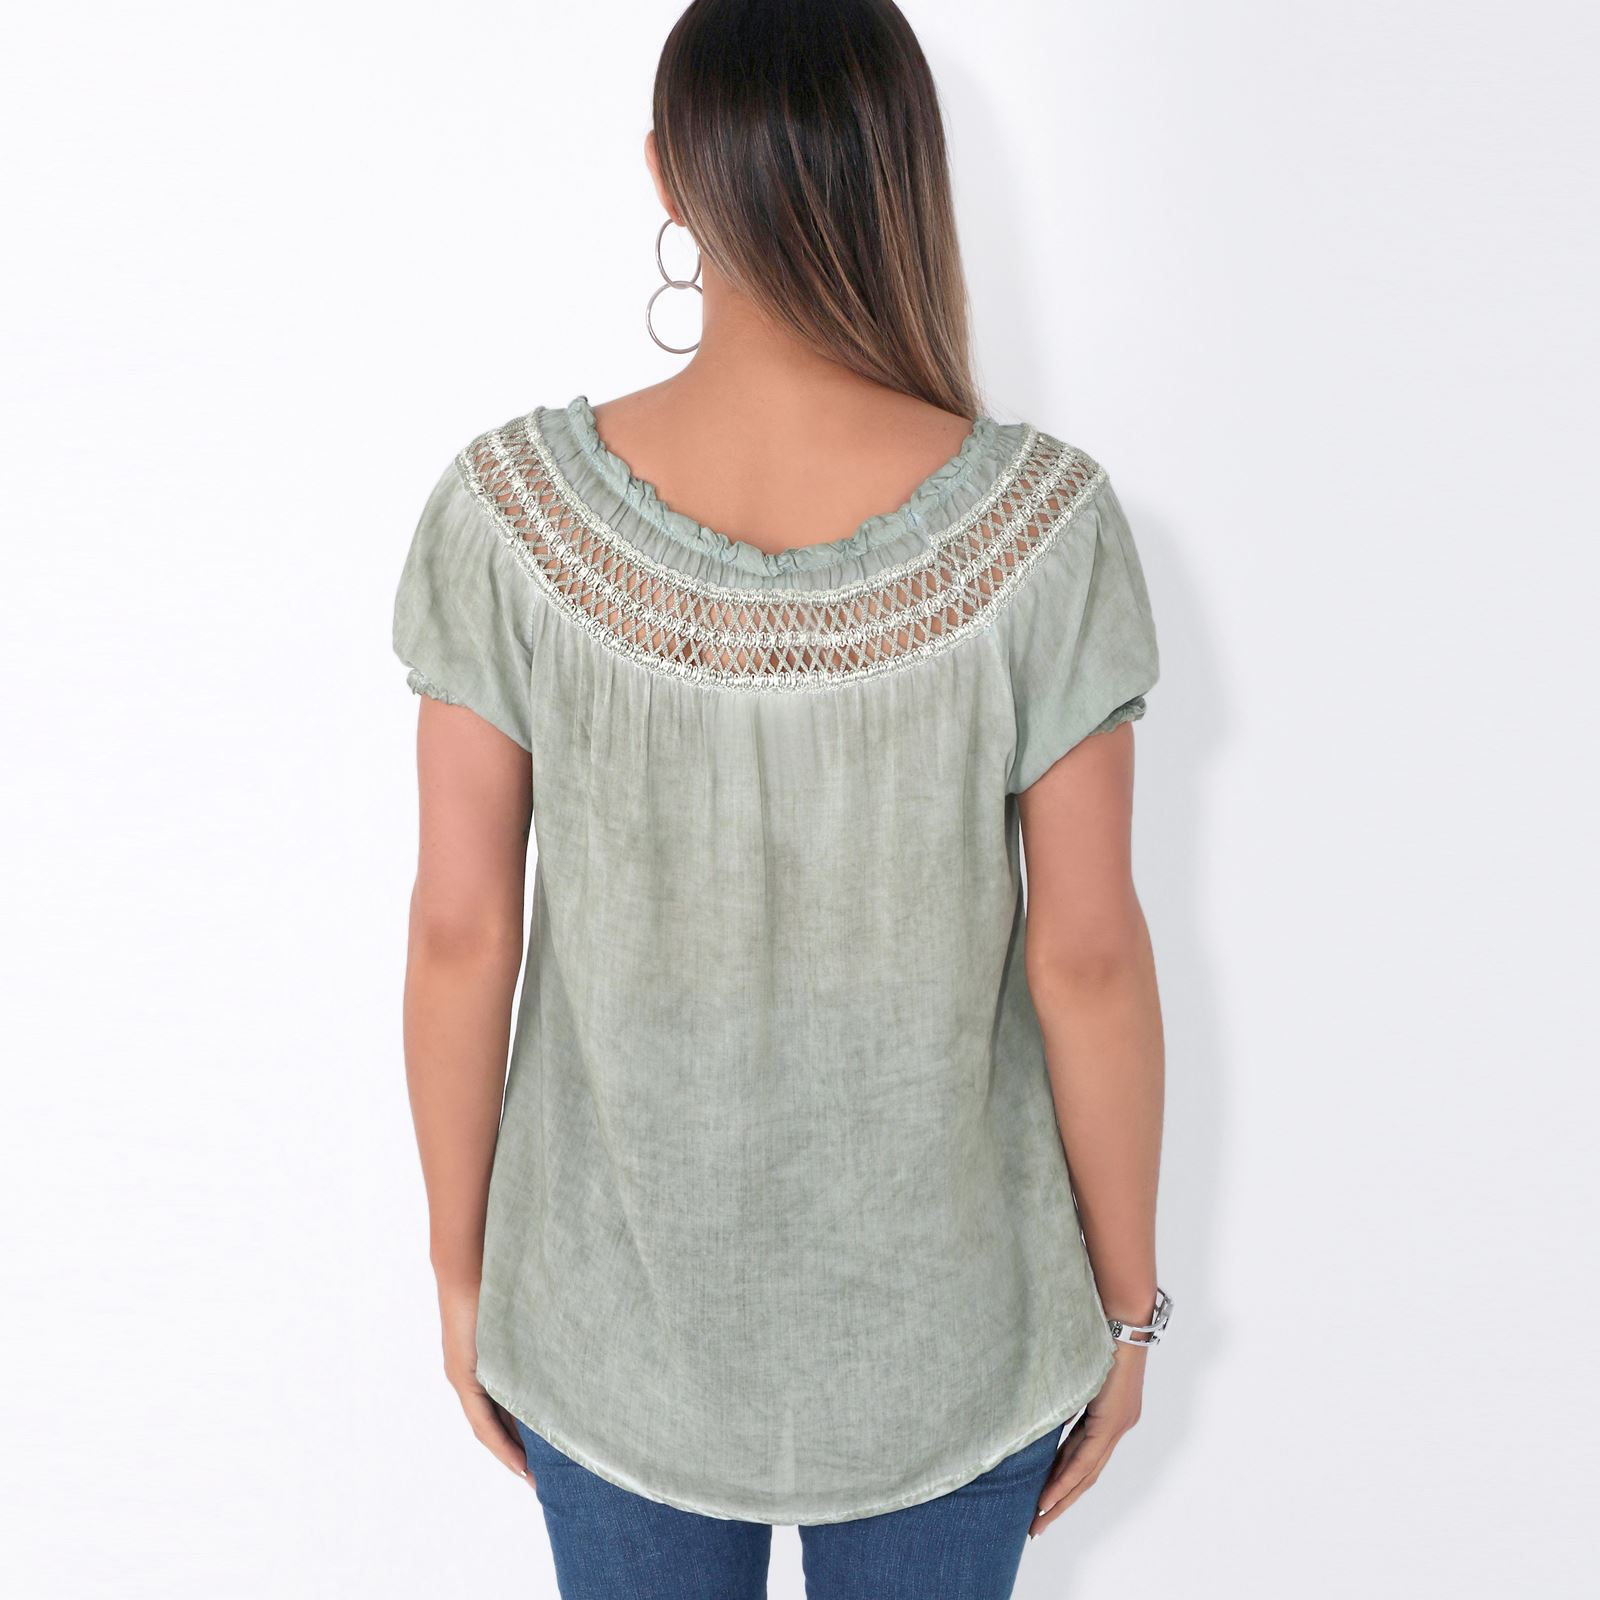 Womens-Off-Shoulder-Blouse-Gypsy-Boho-Cotton-T-Shirt-Top-Tunic-Summer-Loose-Fit thumbnail 9